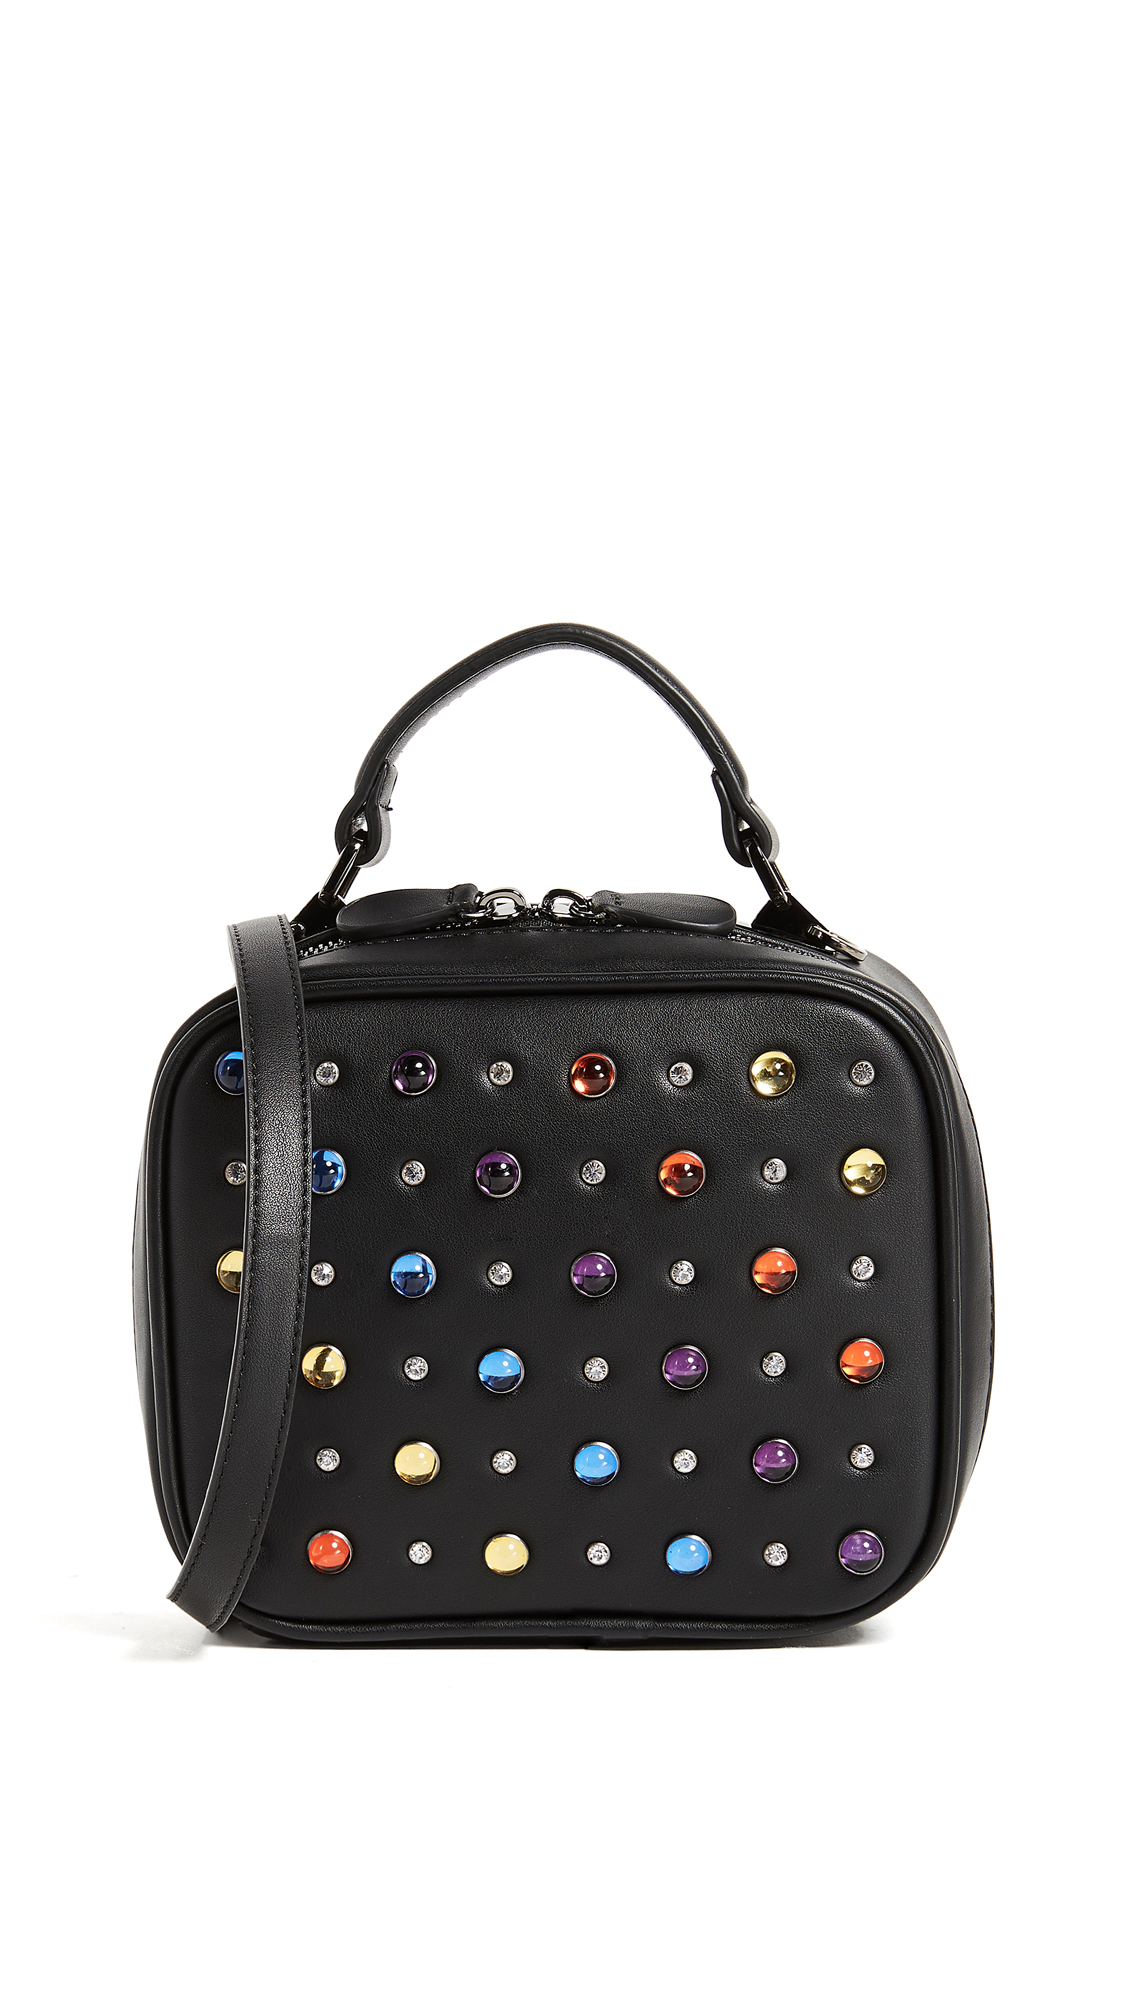 Studio 33 Multi Jewel Box Bag - Black